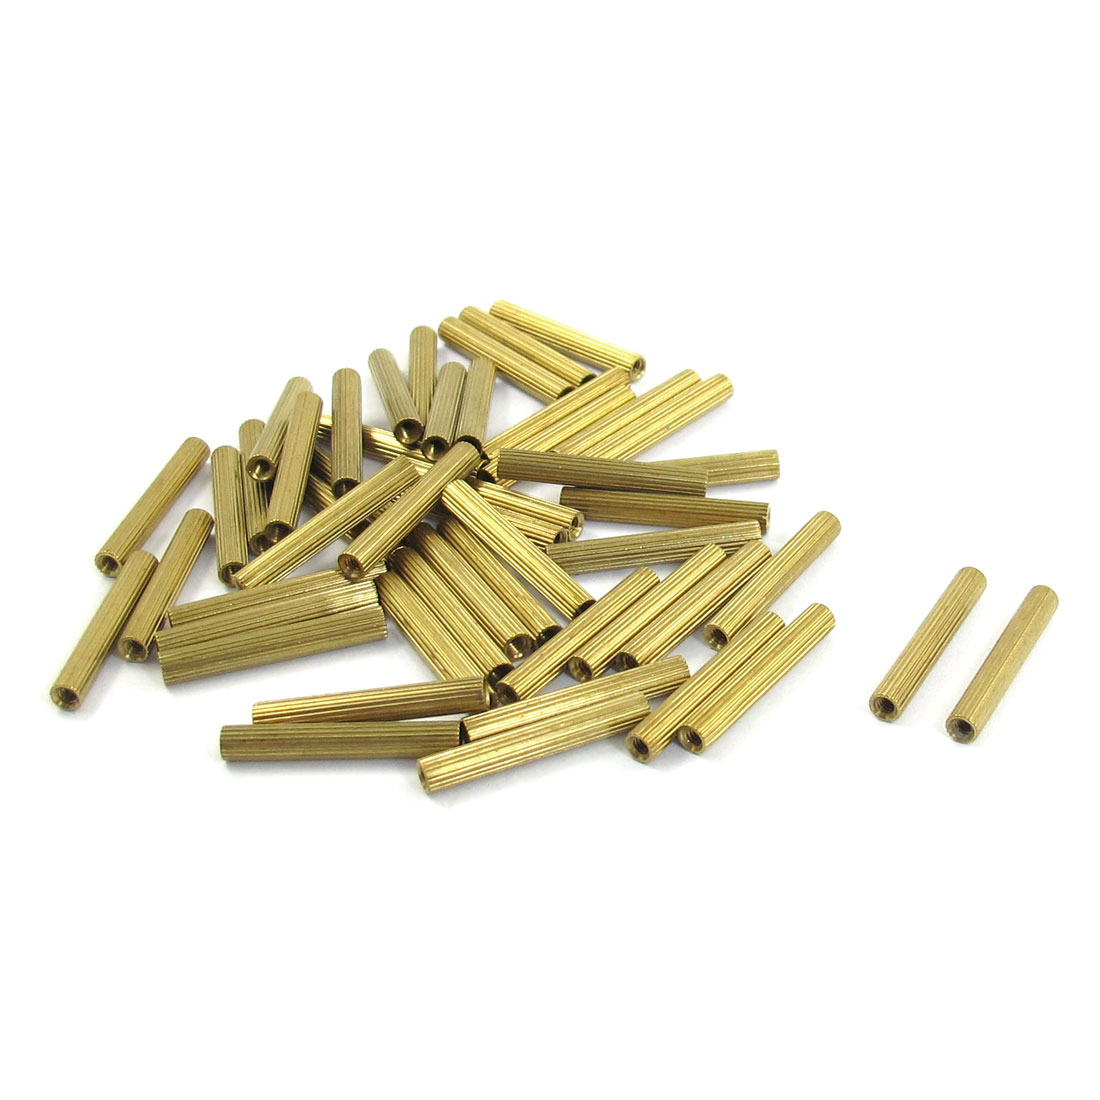 M2x21mm Cylinder Shaped Female Threaded Brass Standoff Spacer 50Pcs